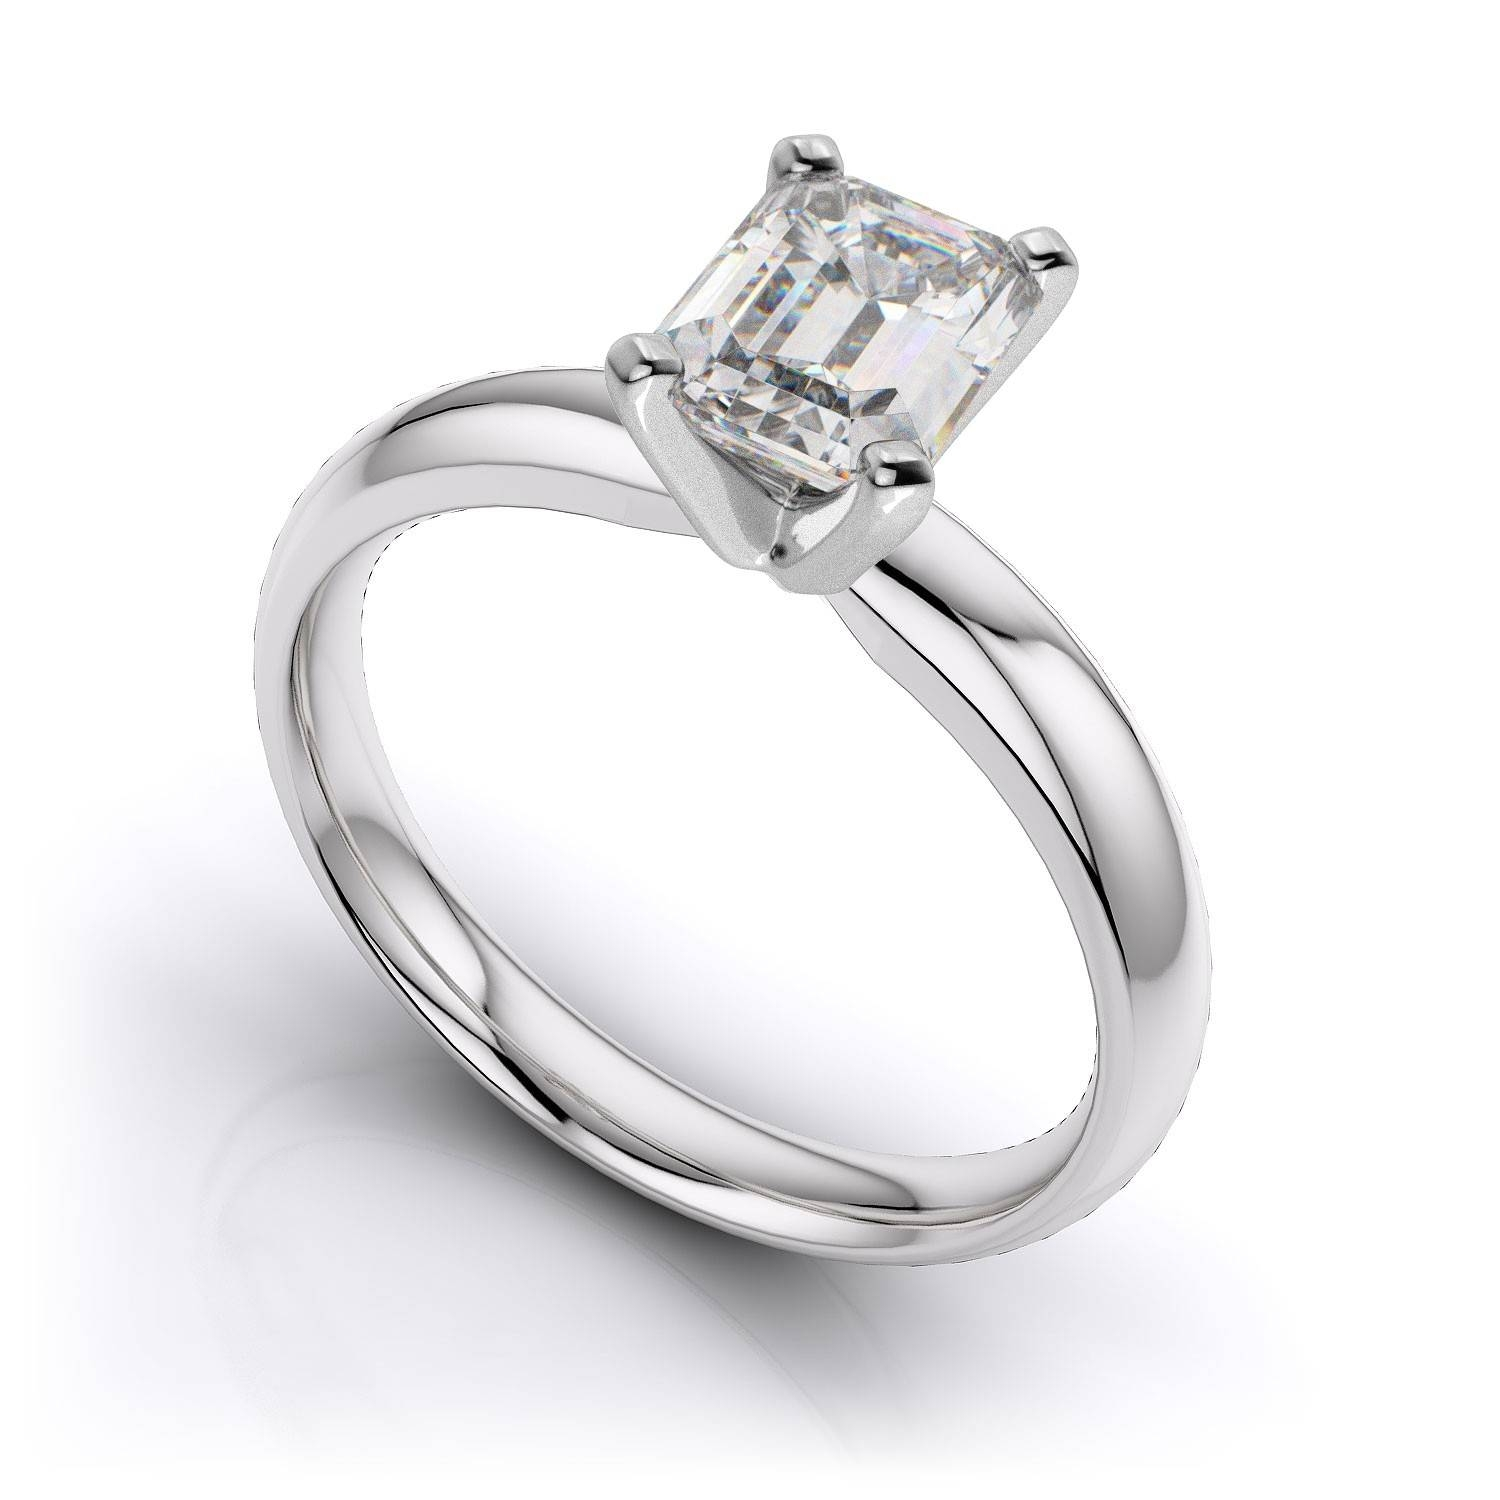 Emerald Cut Solitaire Diamond Engagement Ring – Platinum Within Diamond Wedding Rings Settings (View 15 of 15)